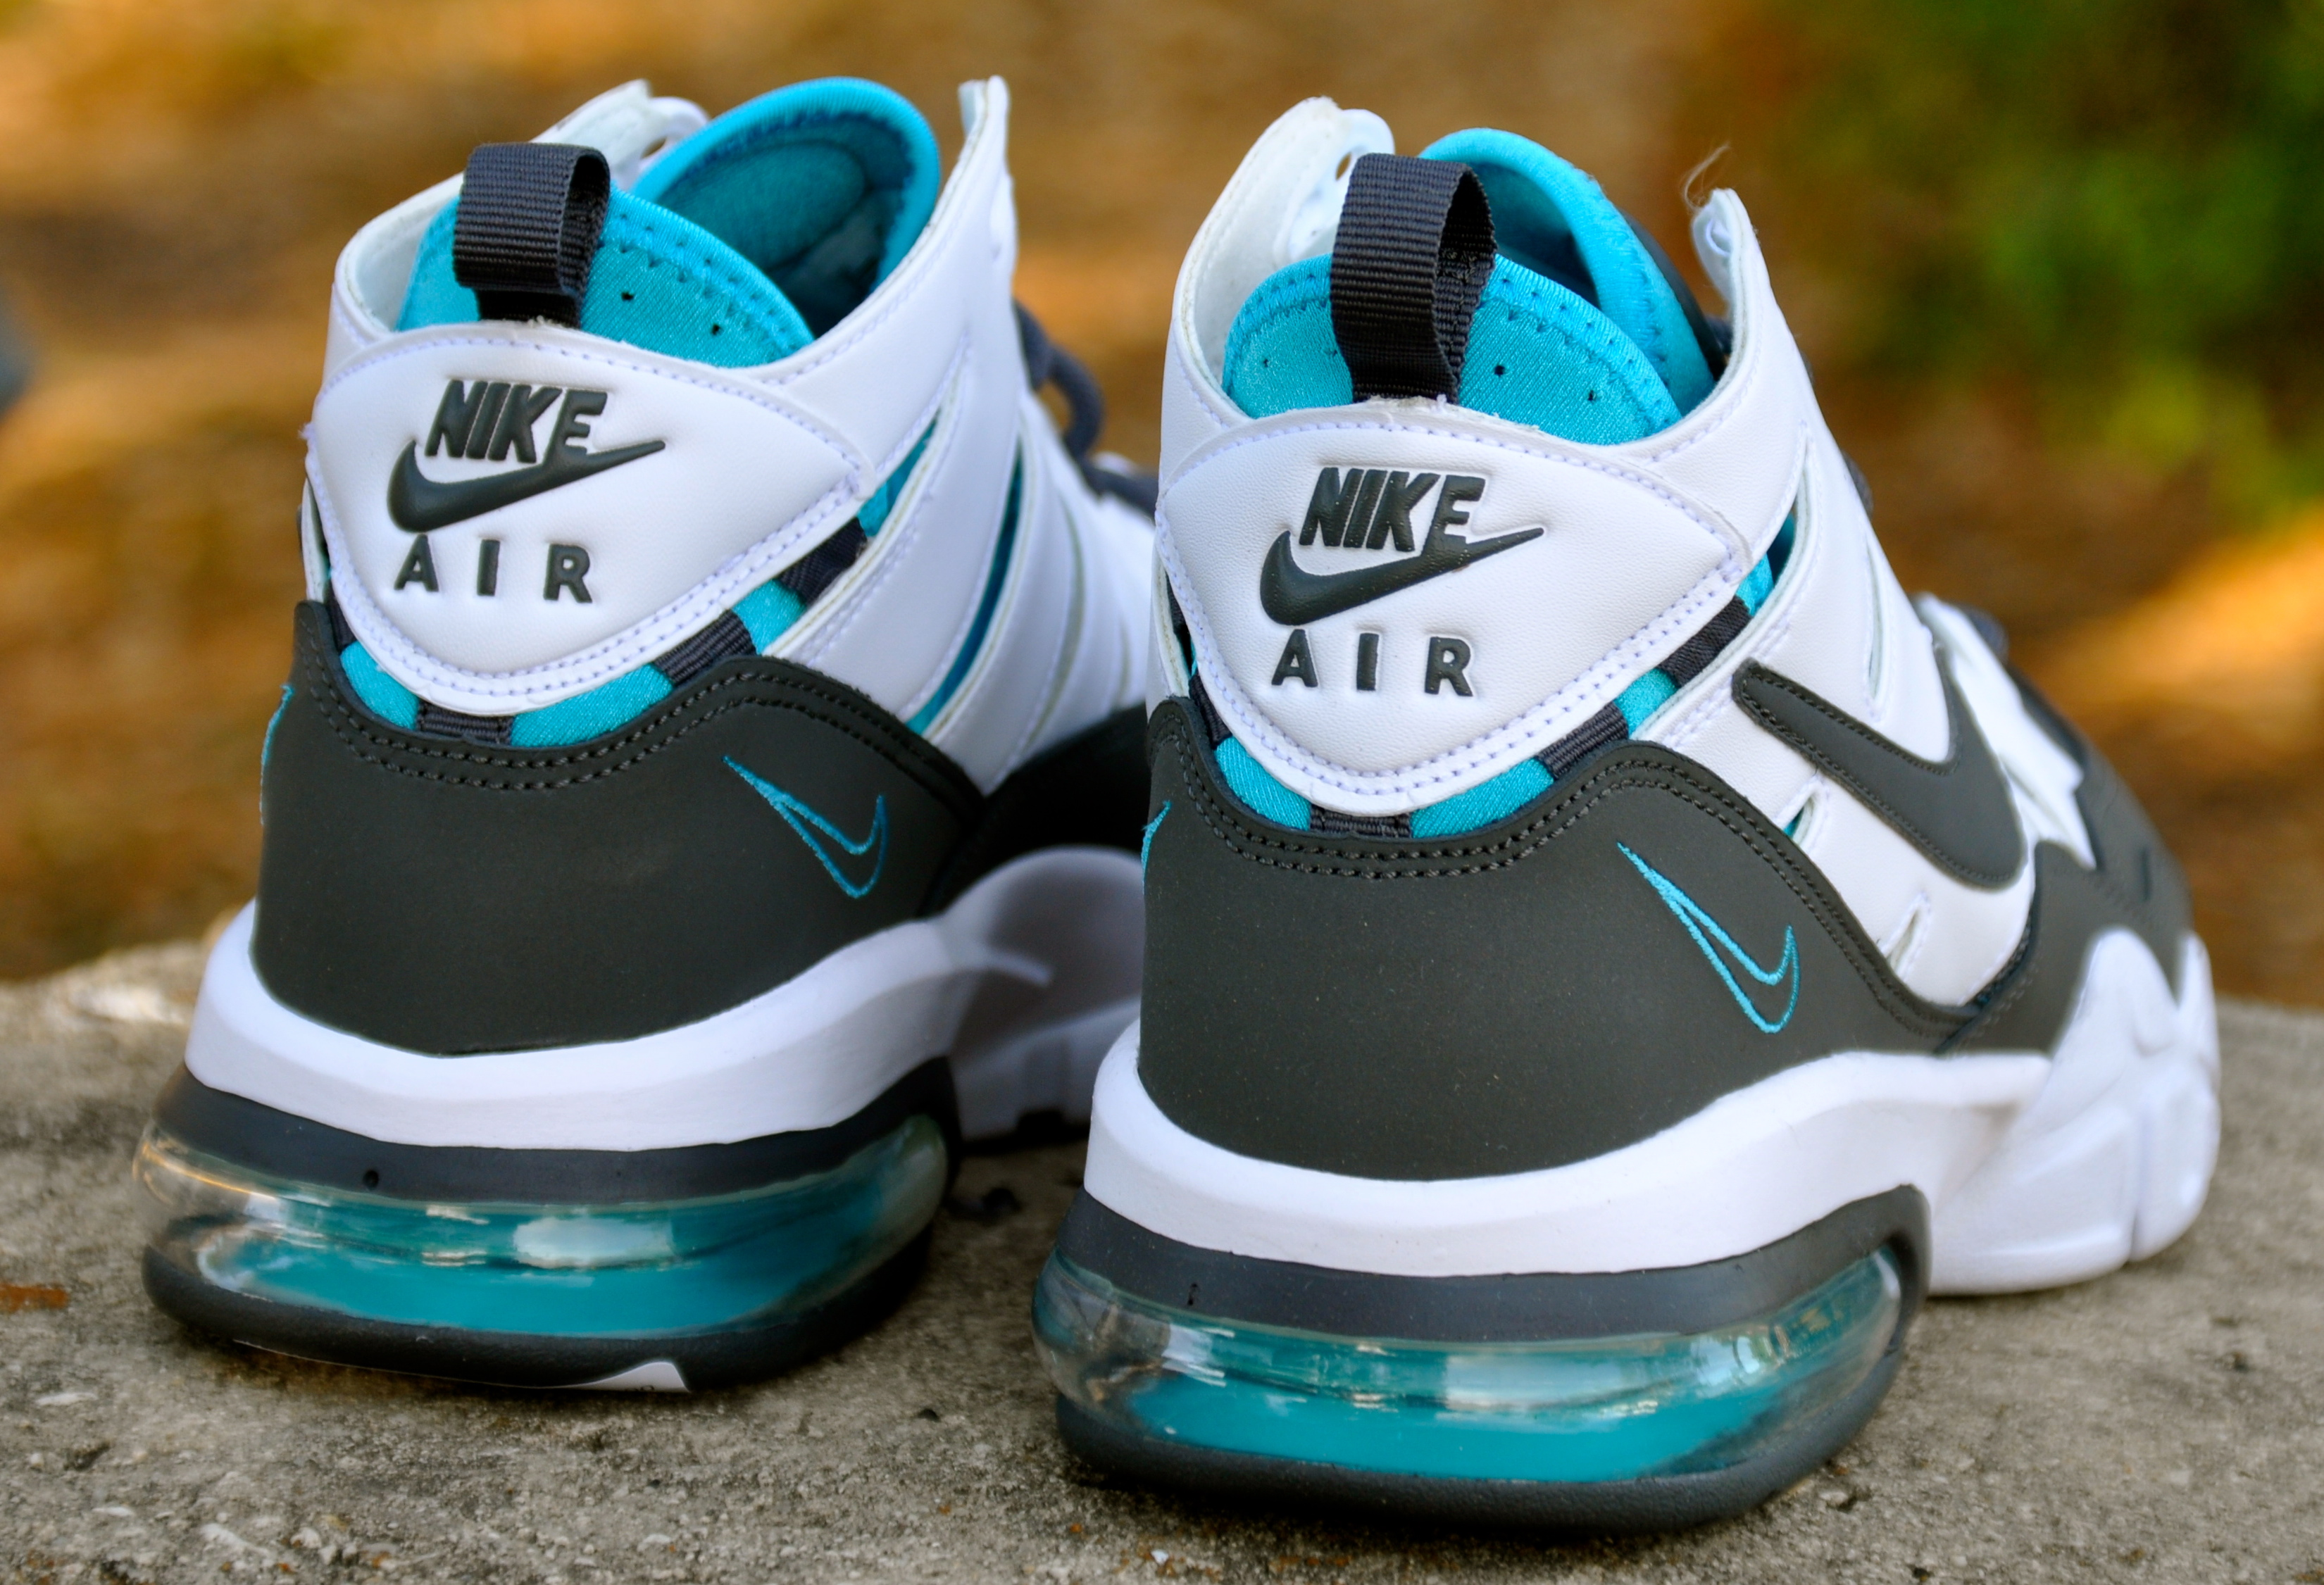 b14656ccda Nike Air Trainer Max 2 '94 (312543 106) | Sole Boutique | Online ...